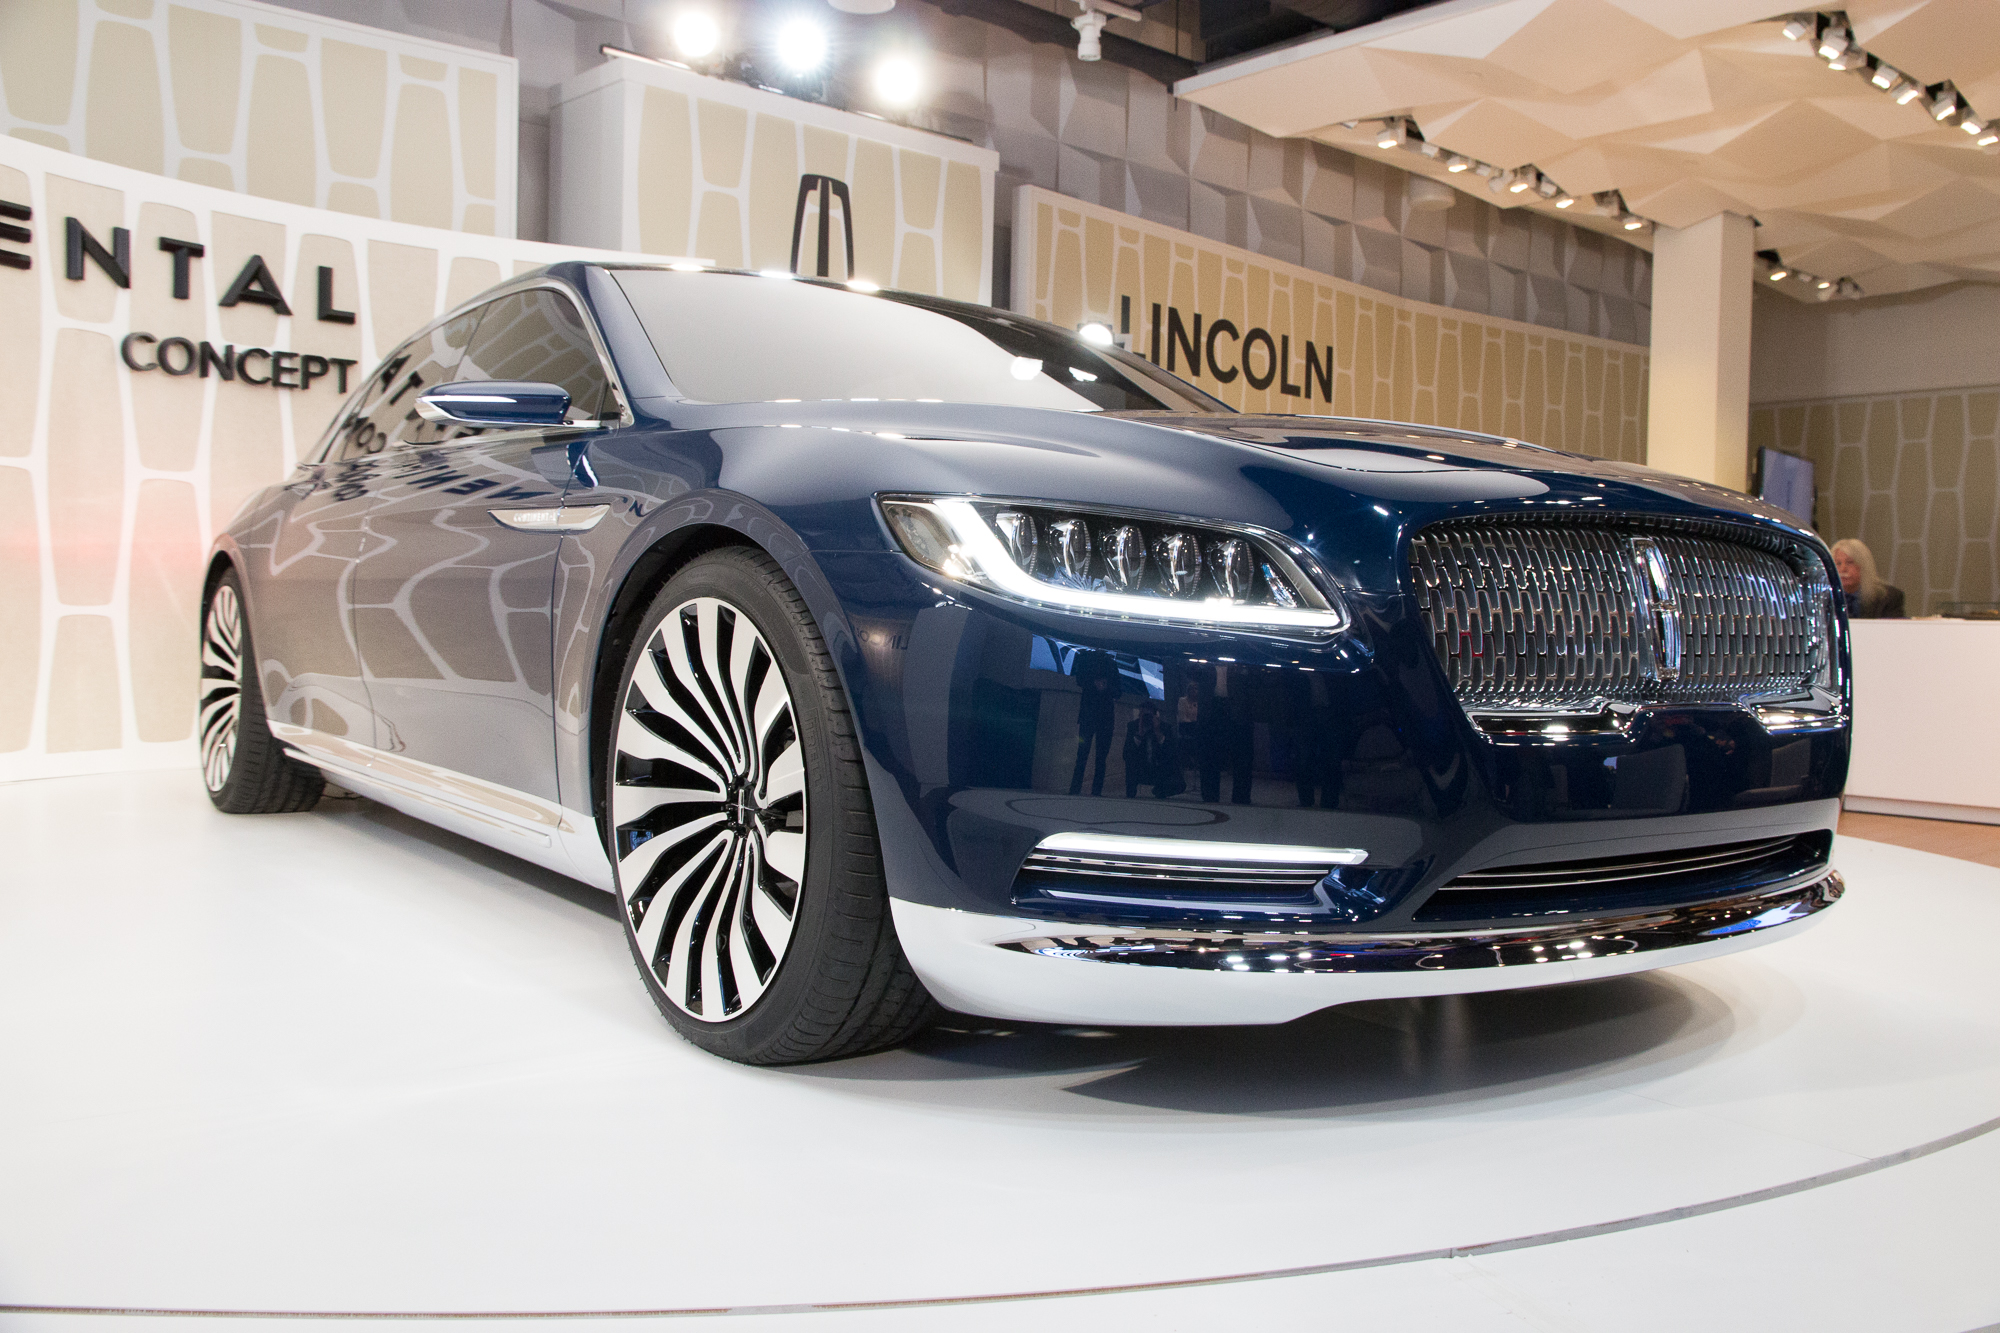 2015 lincoln continental. Black Bedroom Furniture Sets. Home Design Ideas